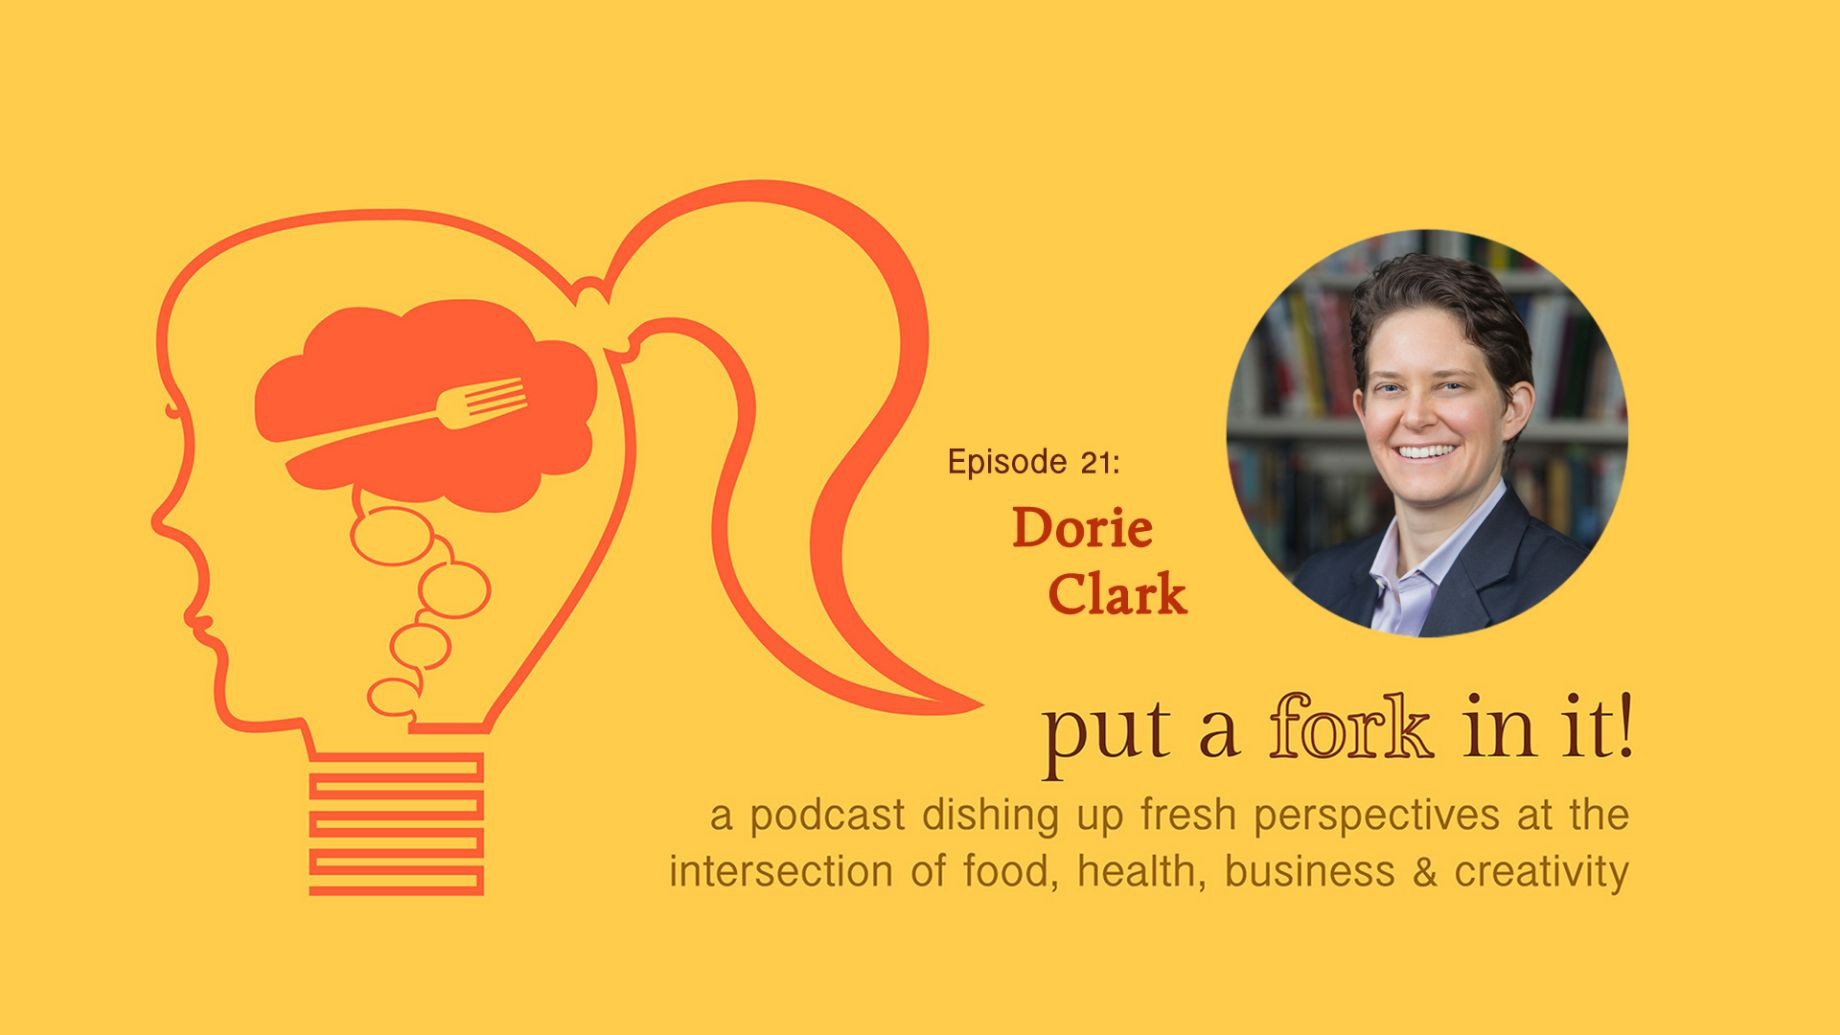 New Podcast Episode - Dorie Clark, author, speaker, consultant